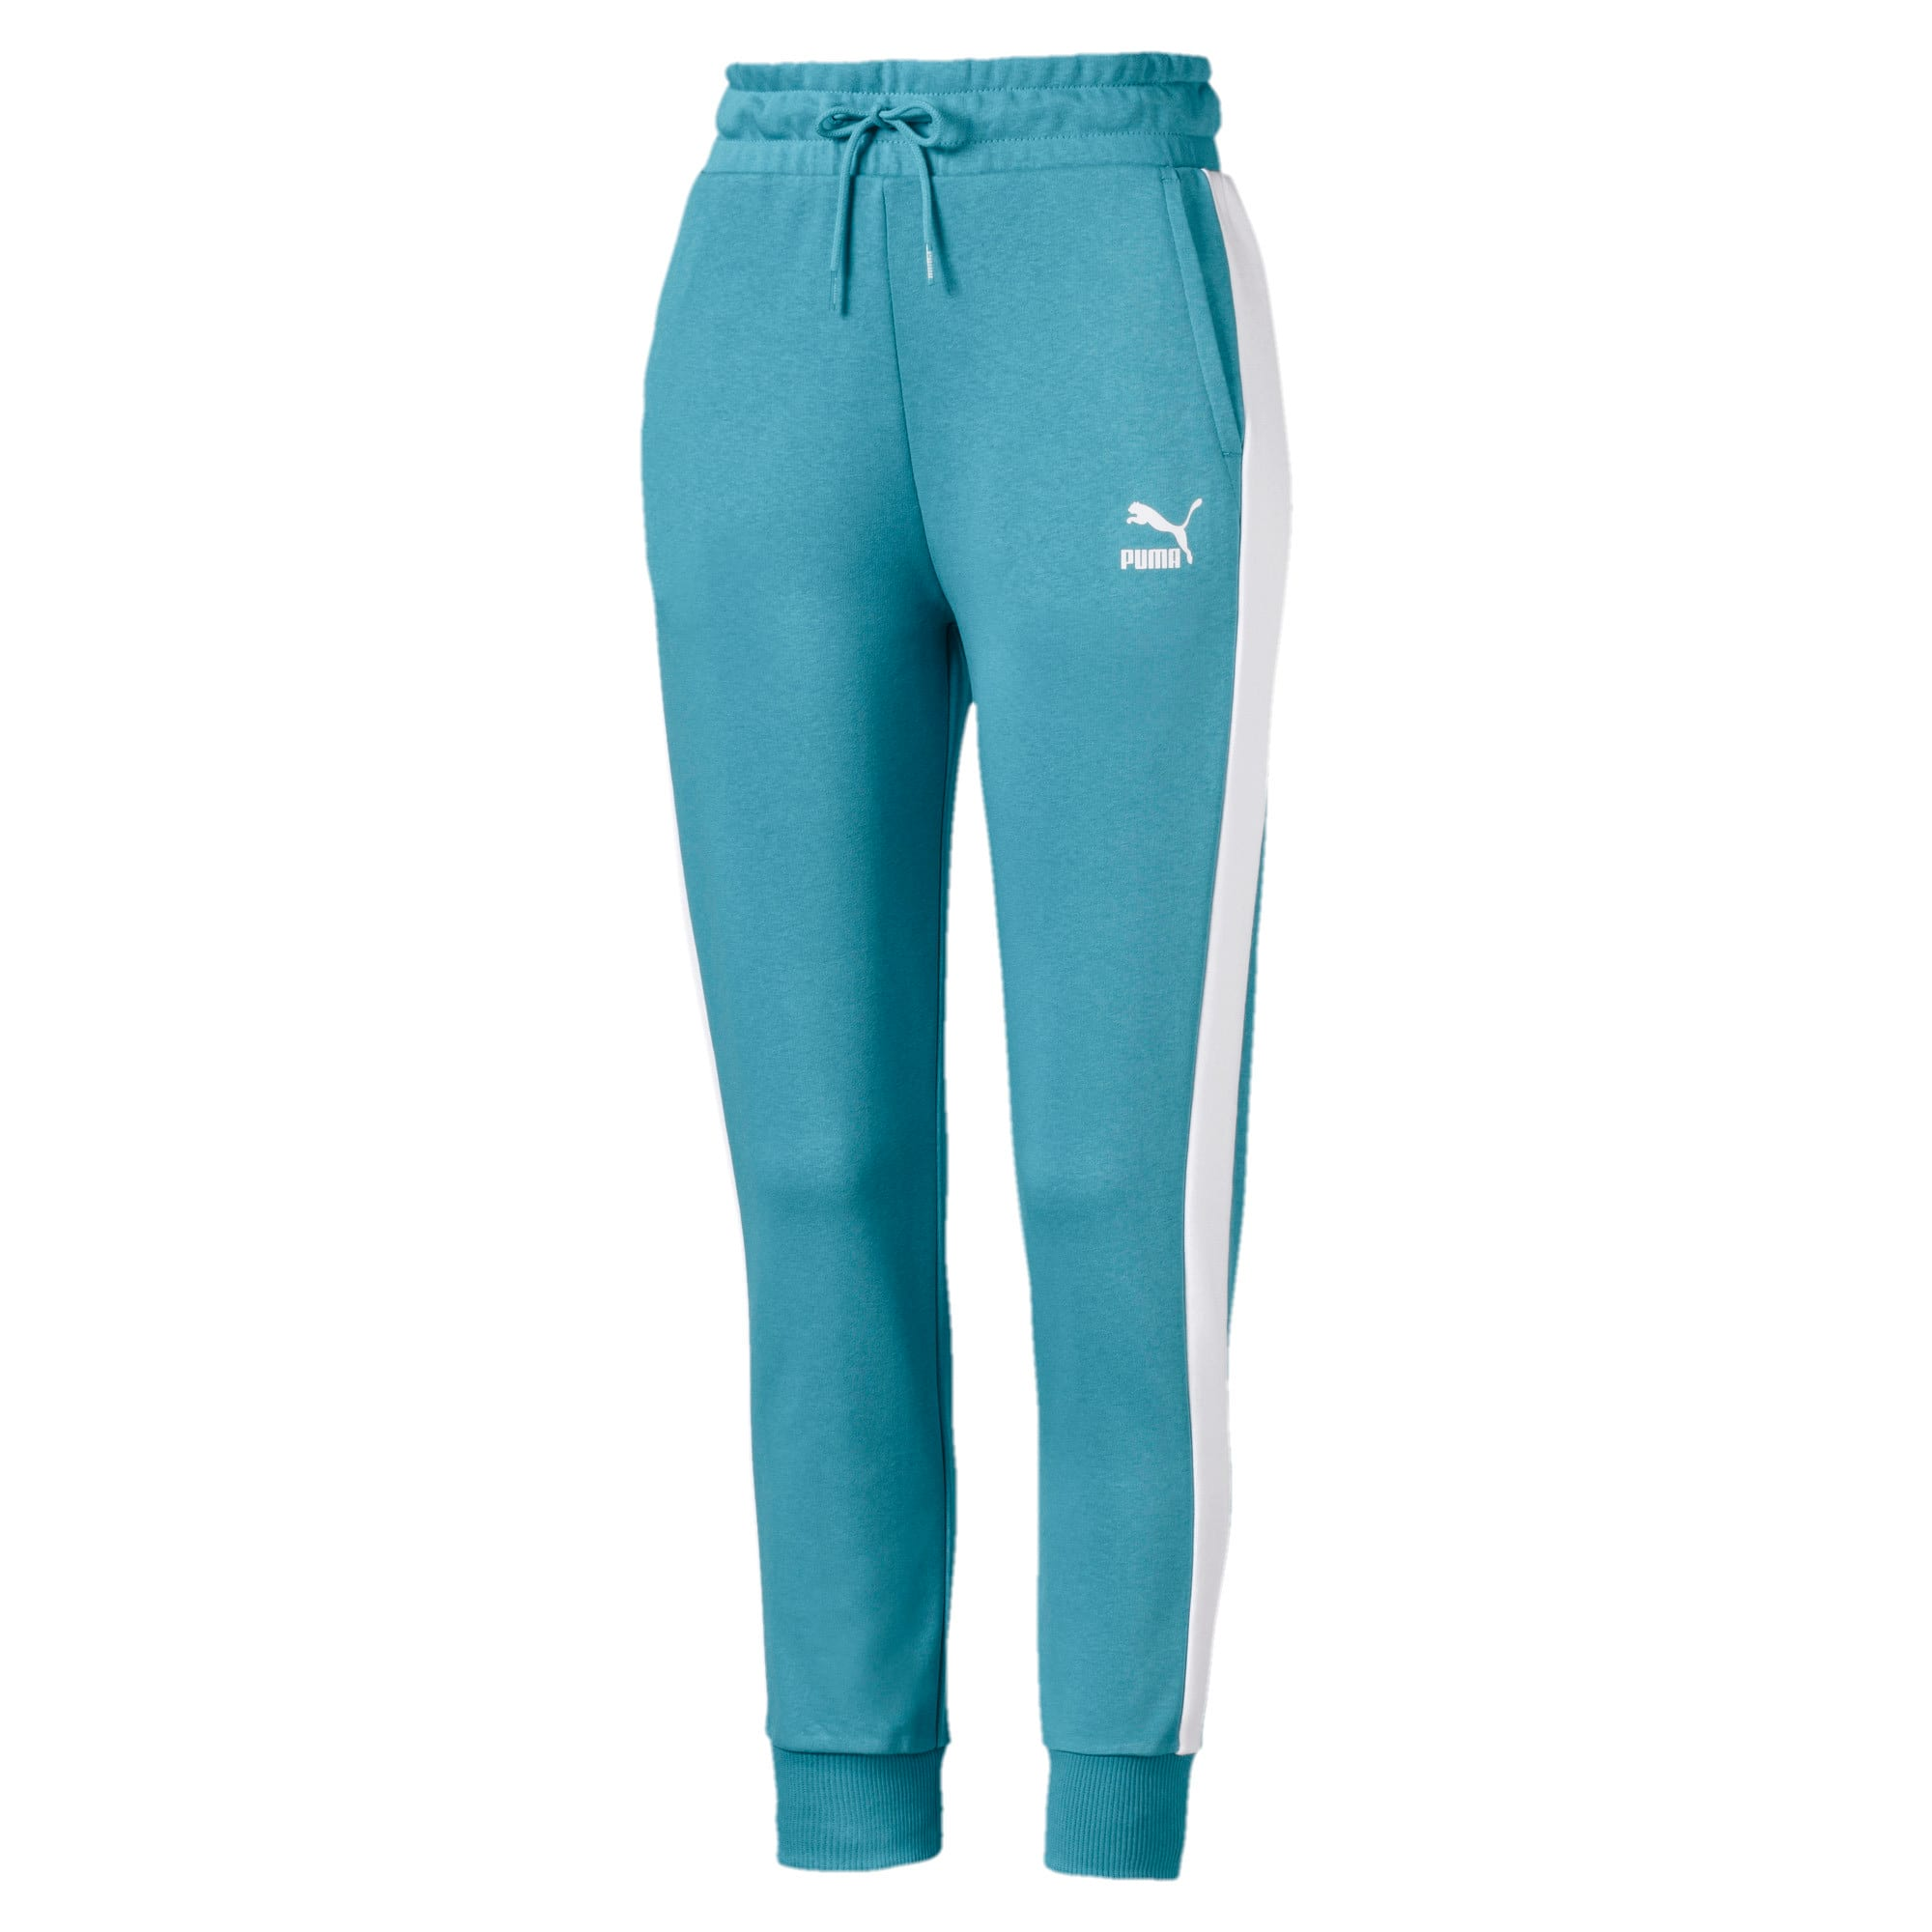 Thumbnail 1 of Gebreide Classics T7 trainingsbroek voor dames, Milky Blue, medium